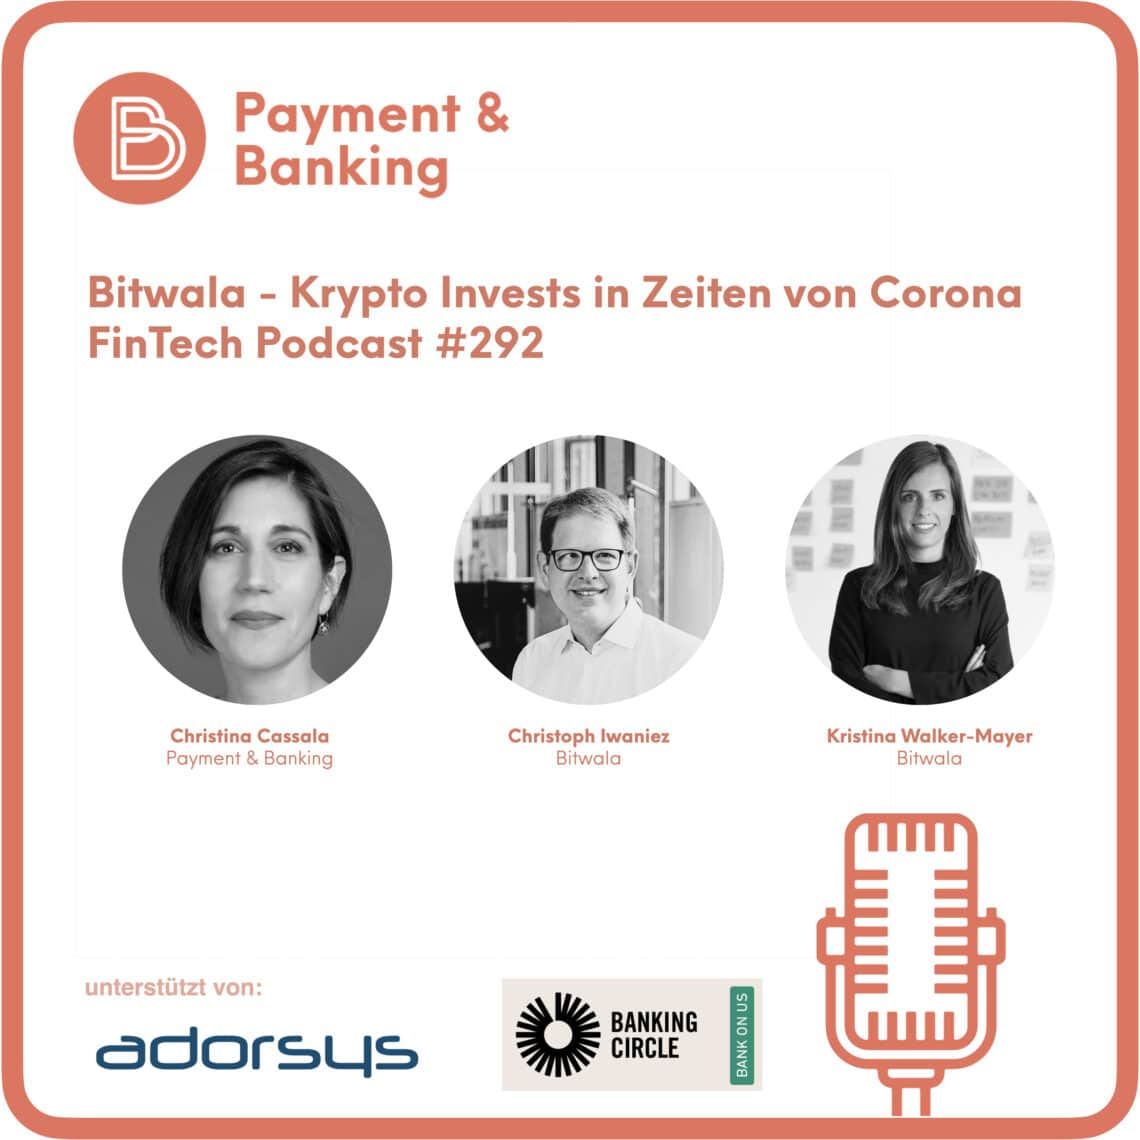 Bitwala - Krypto Invests - FinTech Podcast #292